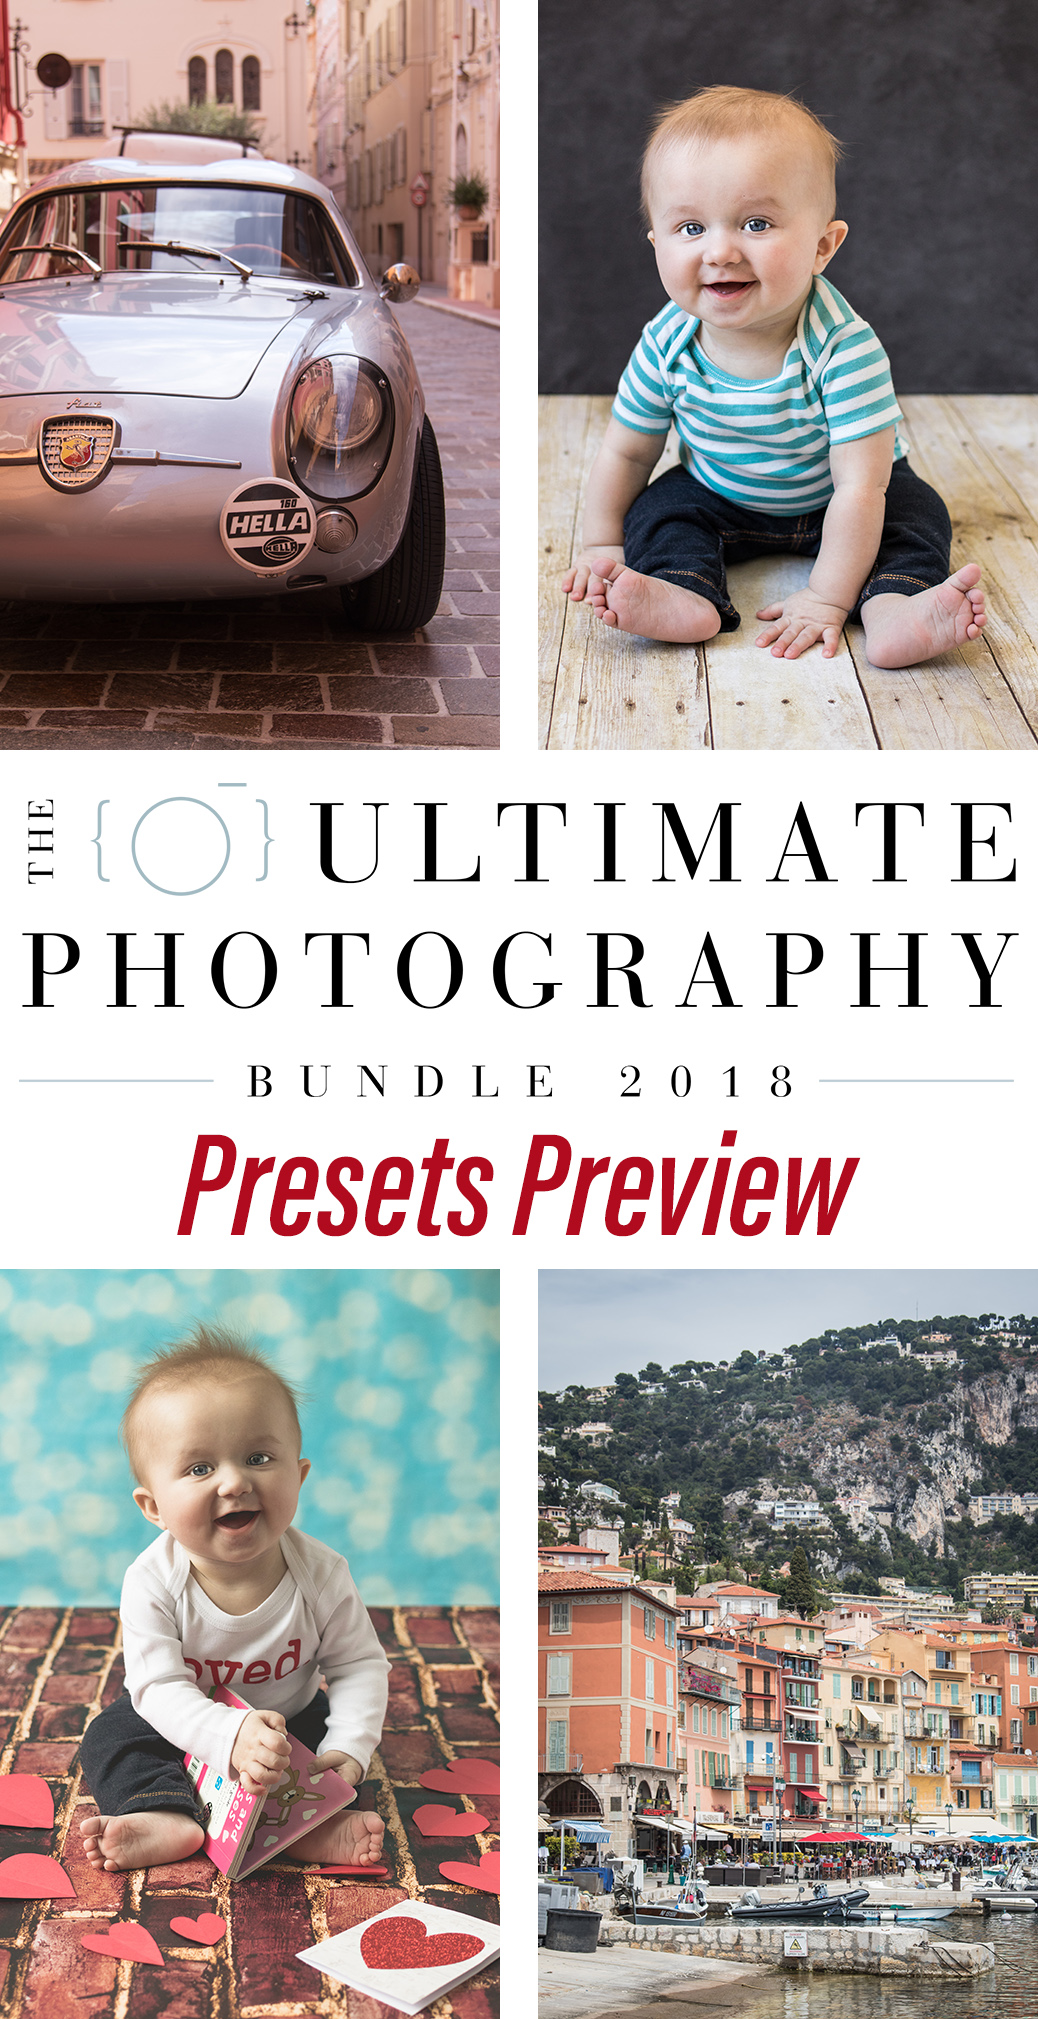 Ultimate Photography Bundle 2018. Contains six preset packages with over 500 presets total. Preview just a small sample of this amazing deal! | https://www.roseclearfield.com